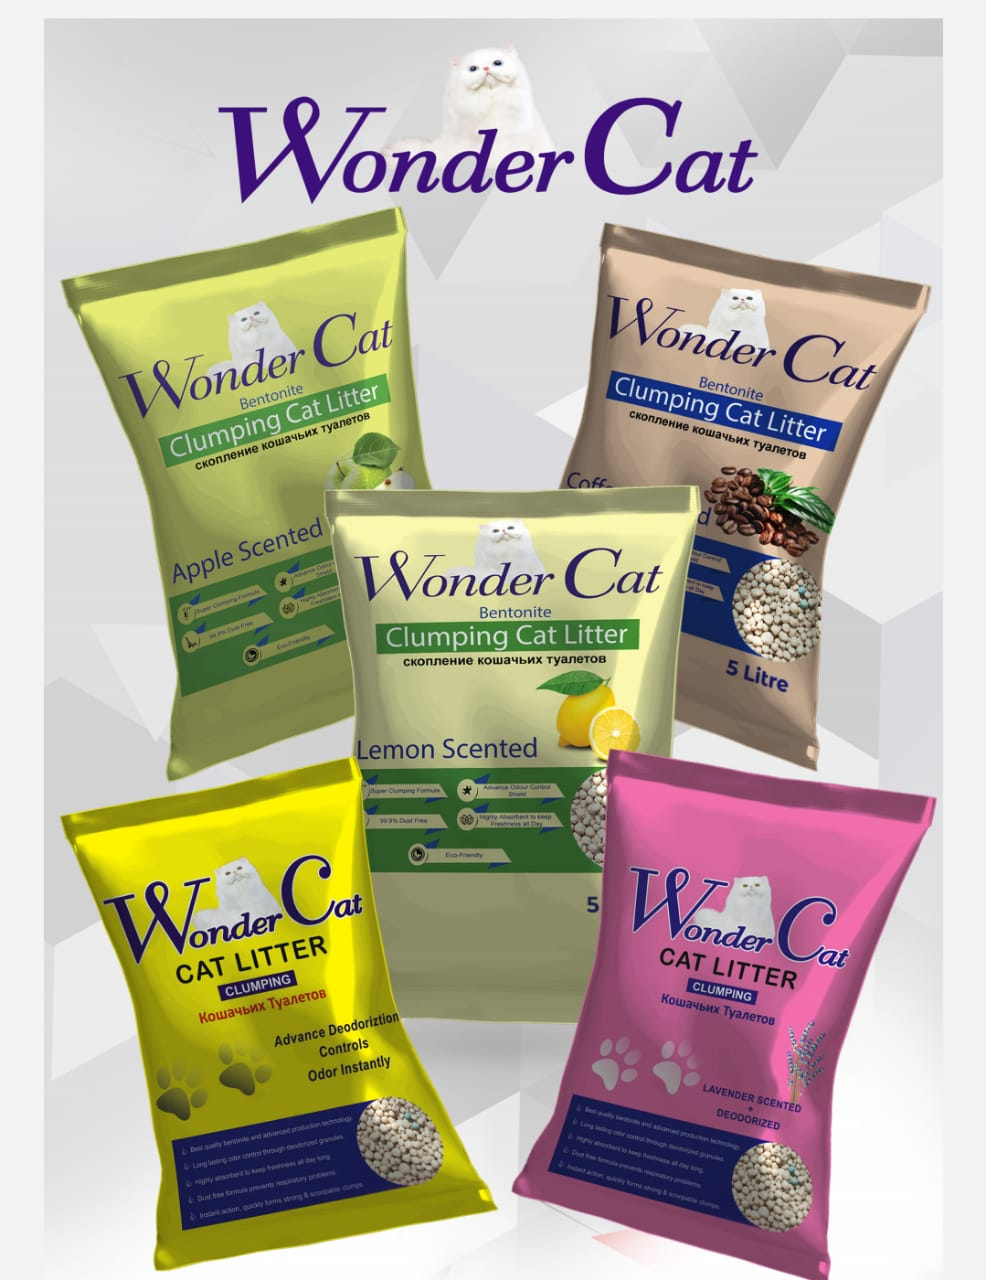 Wonder Cat Litter Lemon & Coffee